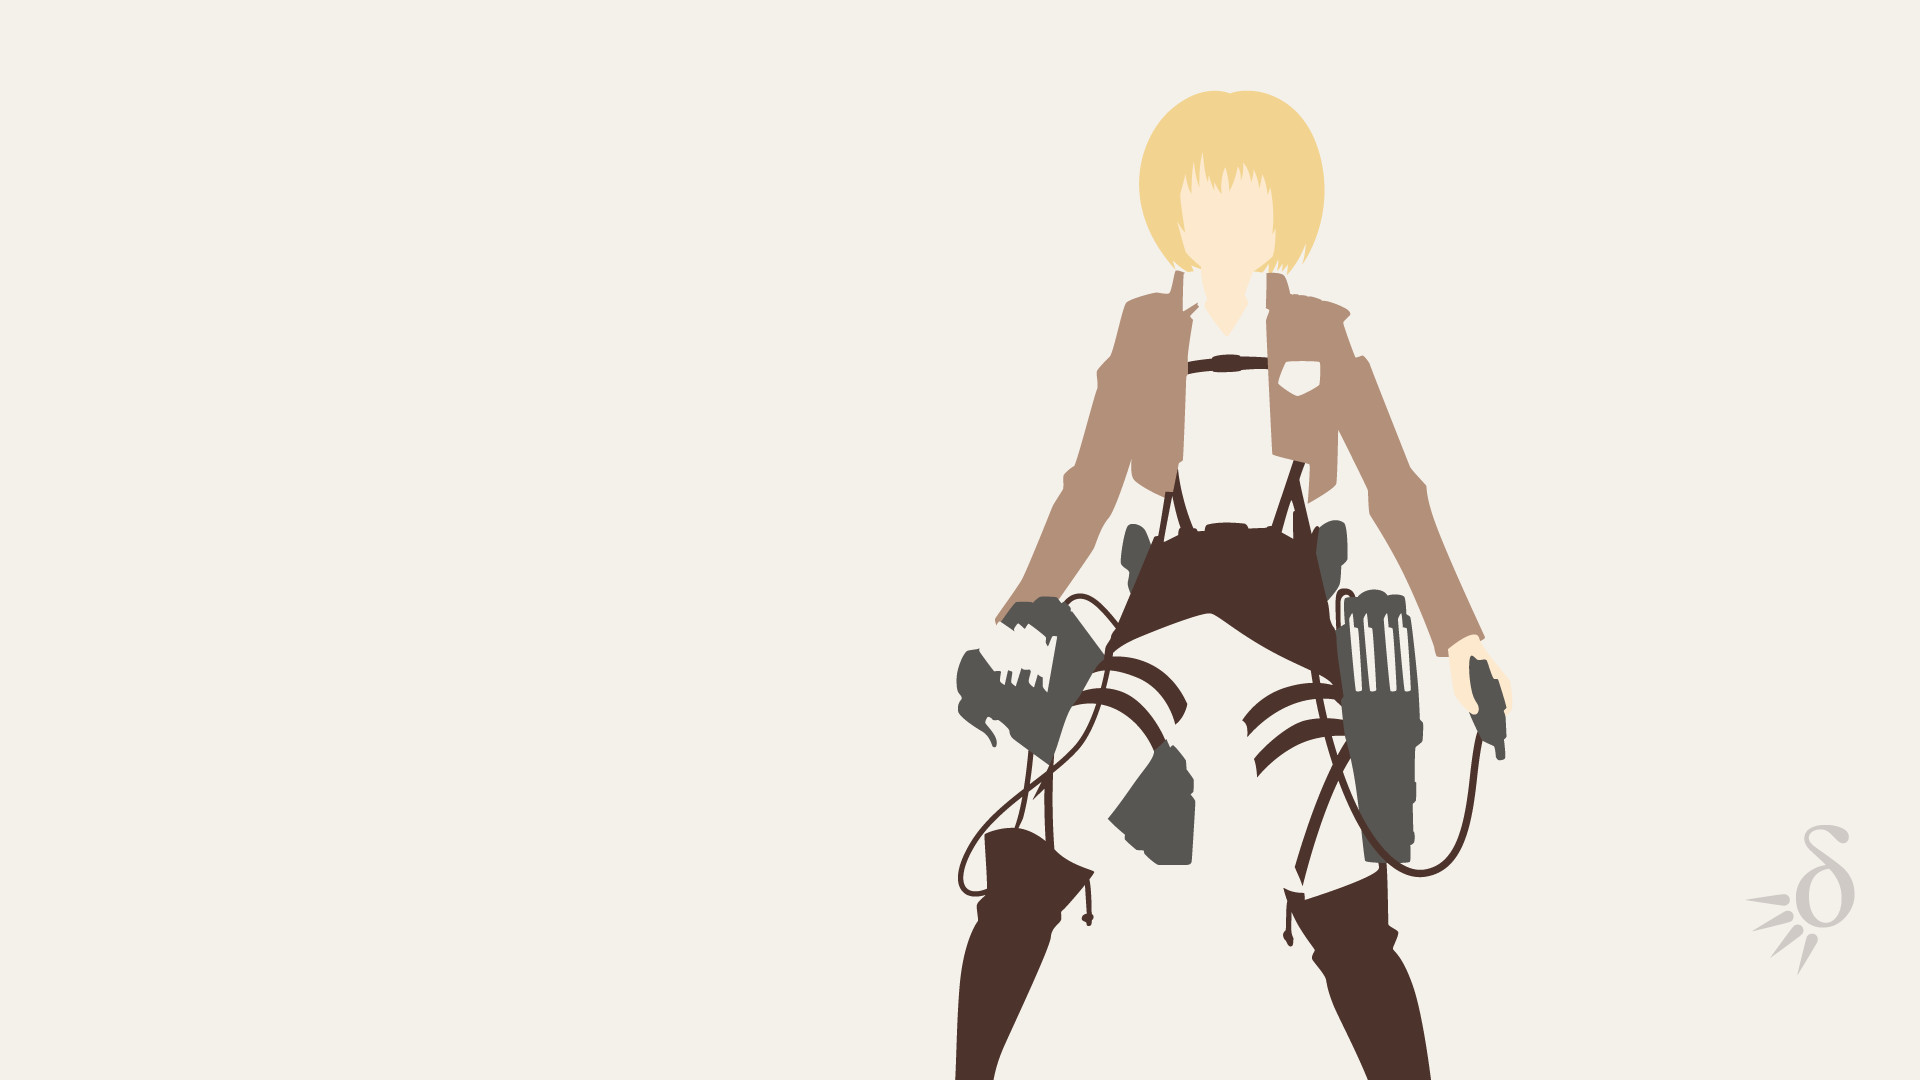 1920x1080 minimalist-Eren by Siruo-87 on DeviantArt | Minimalism | Pinterest |  Minimalist and Anime